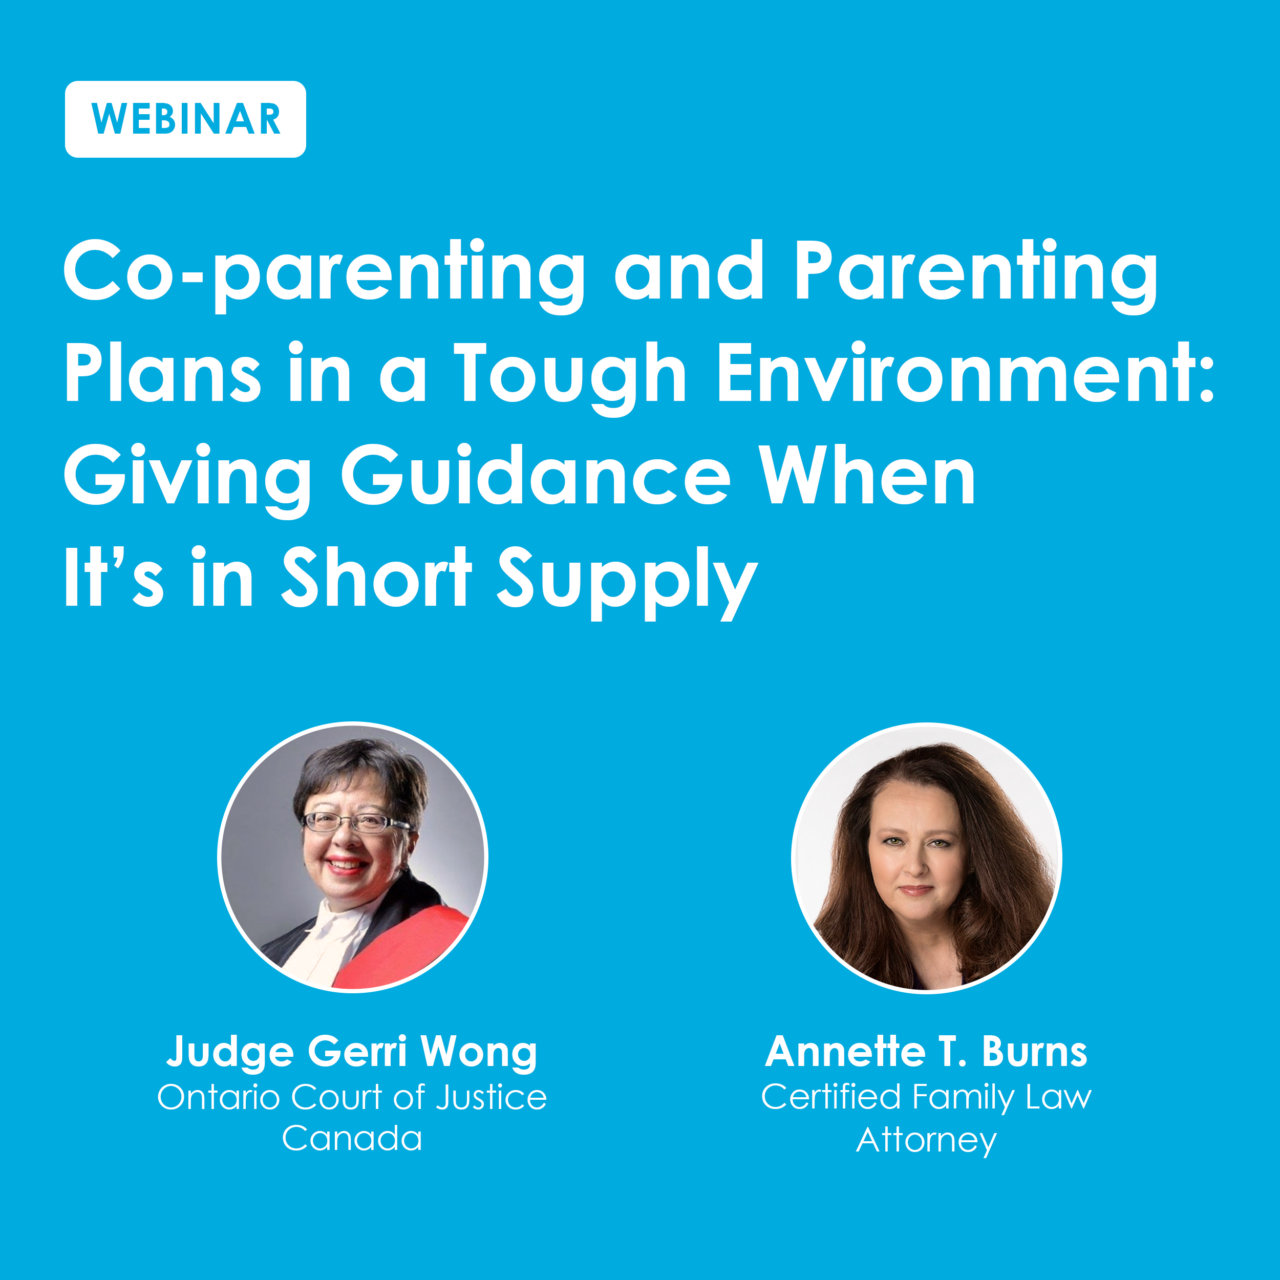 Co-Parenting and Parenting Webinar